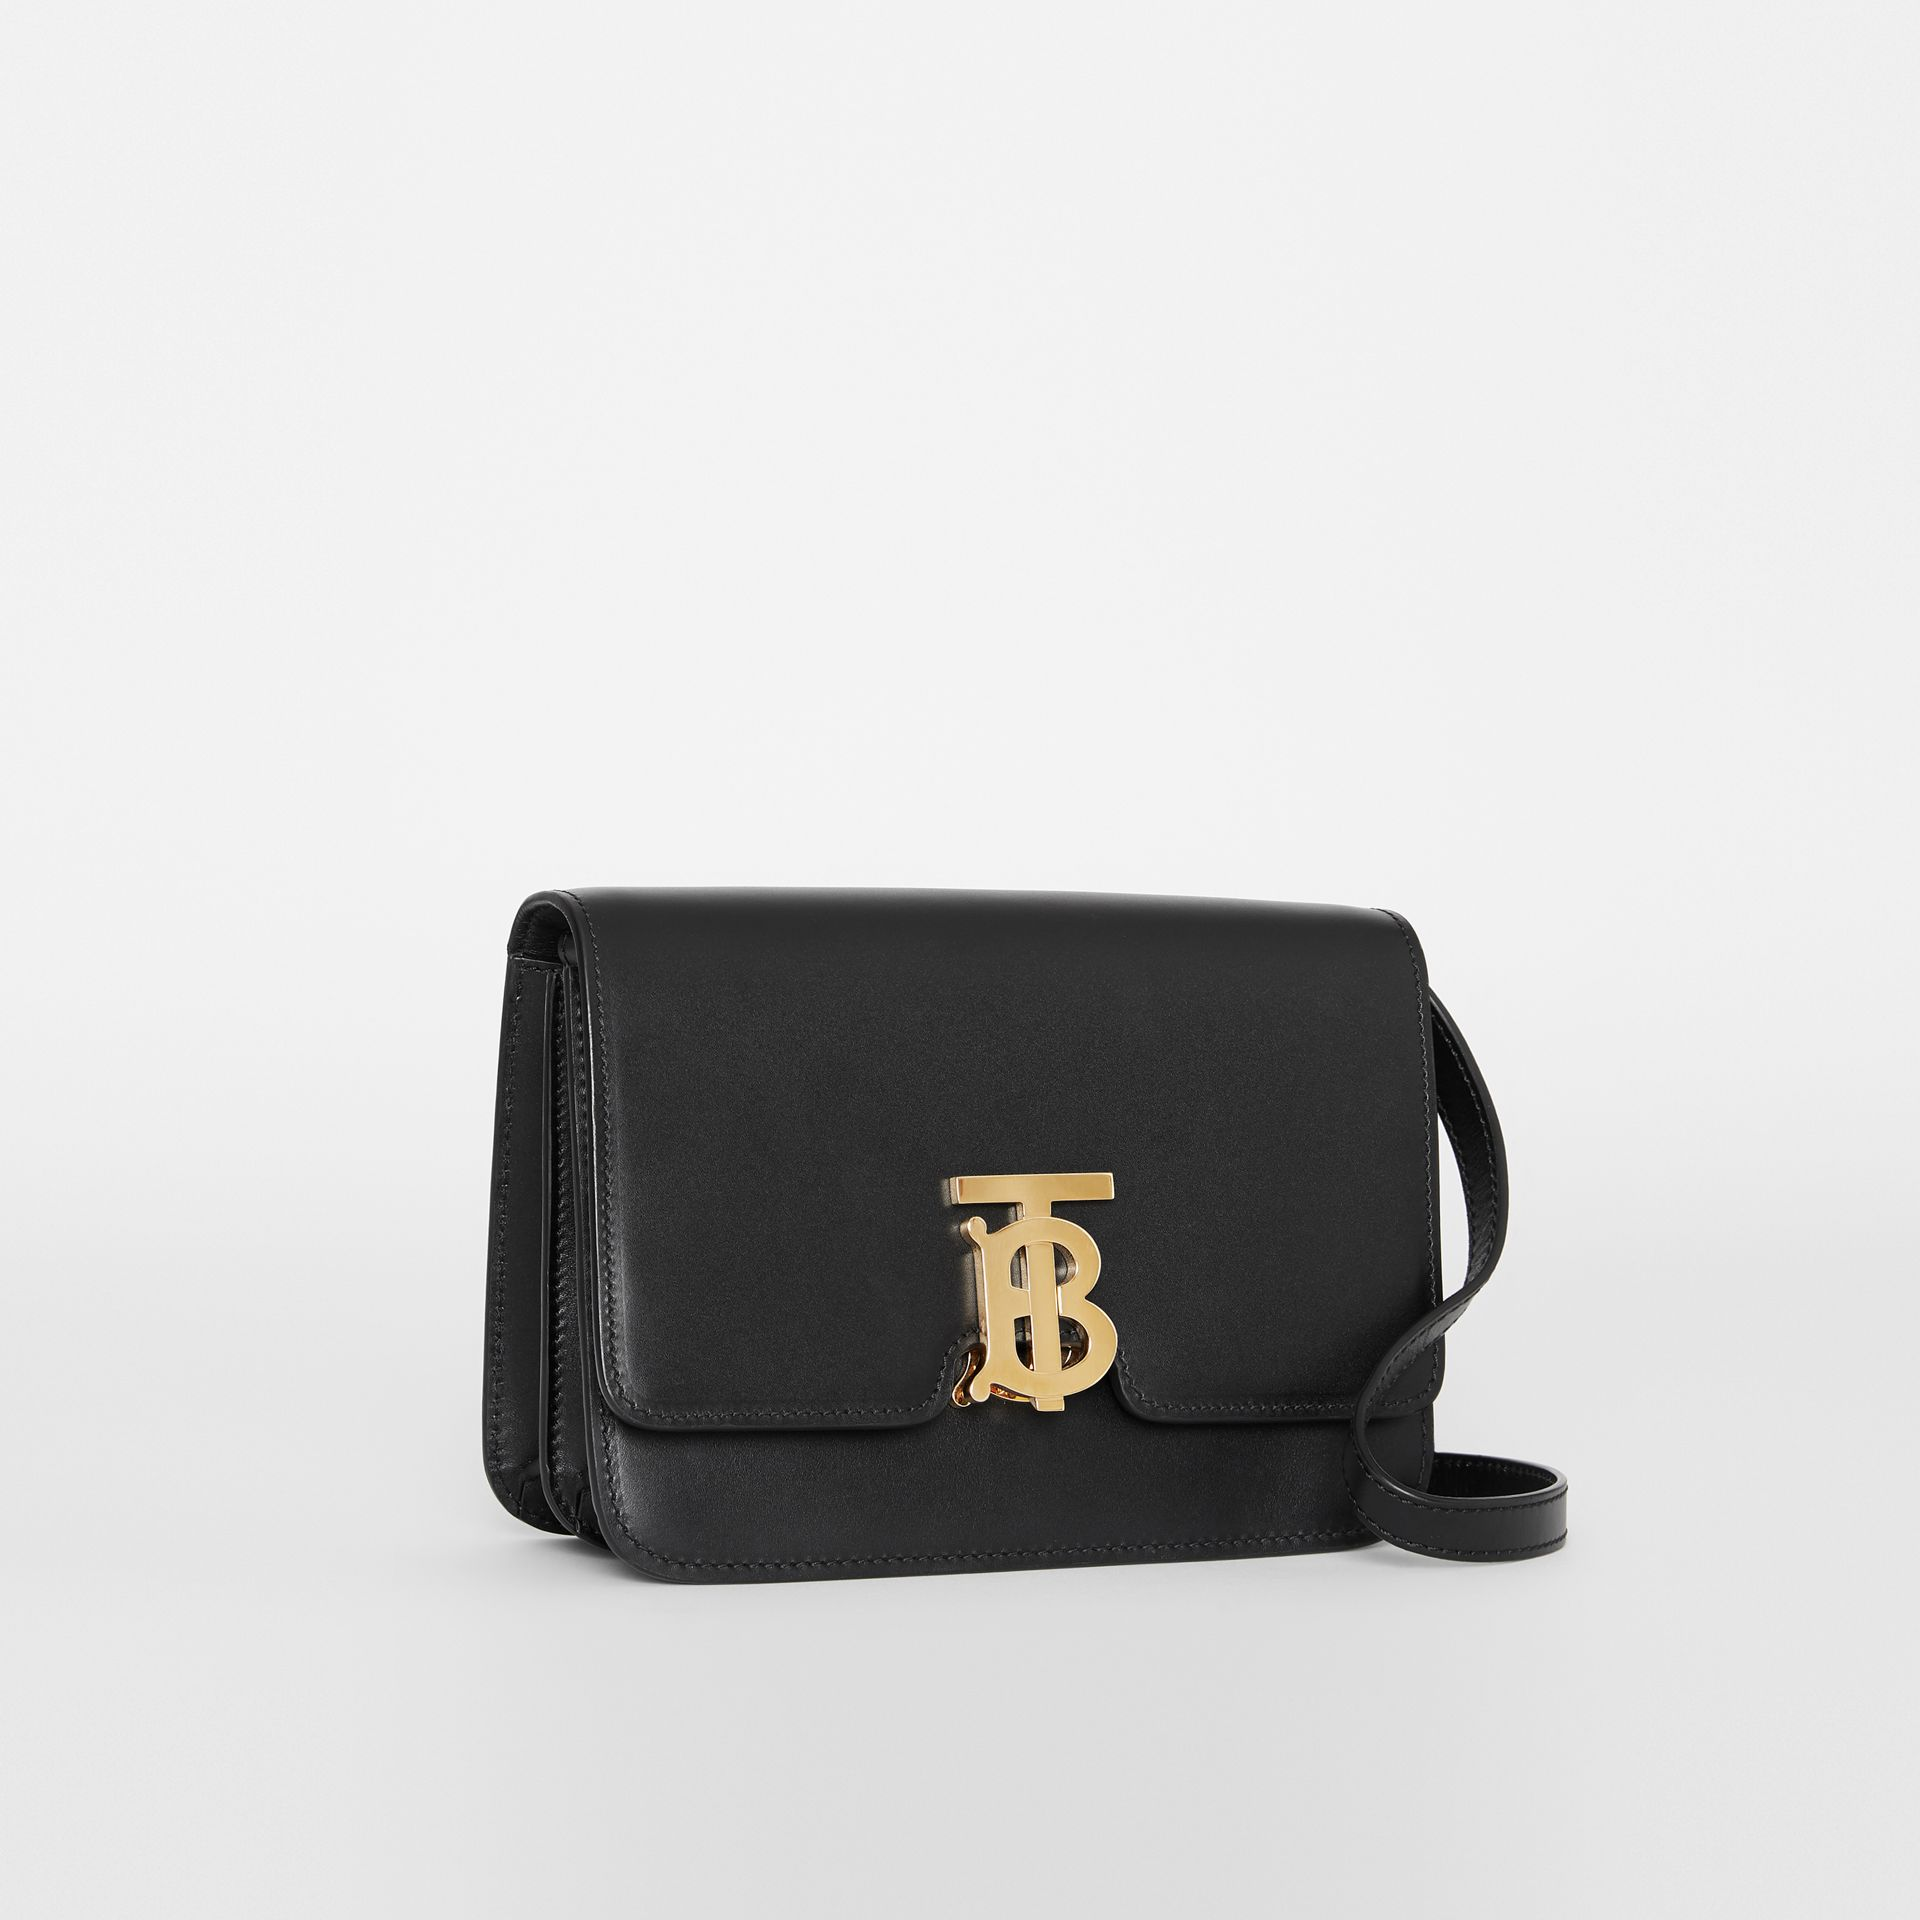 Small Leather TB Bag in Black - Women | Burberry United States - gallery image 6